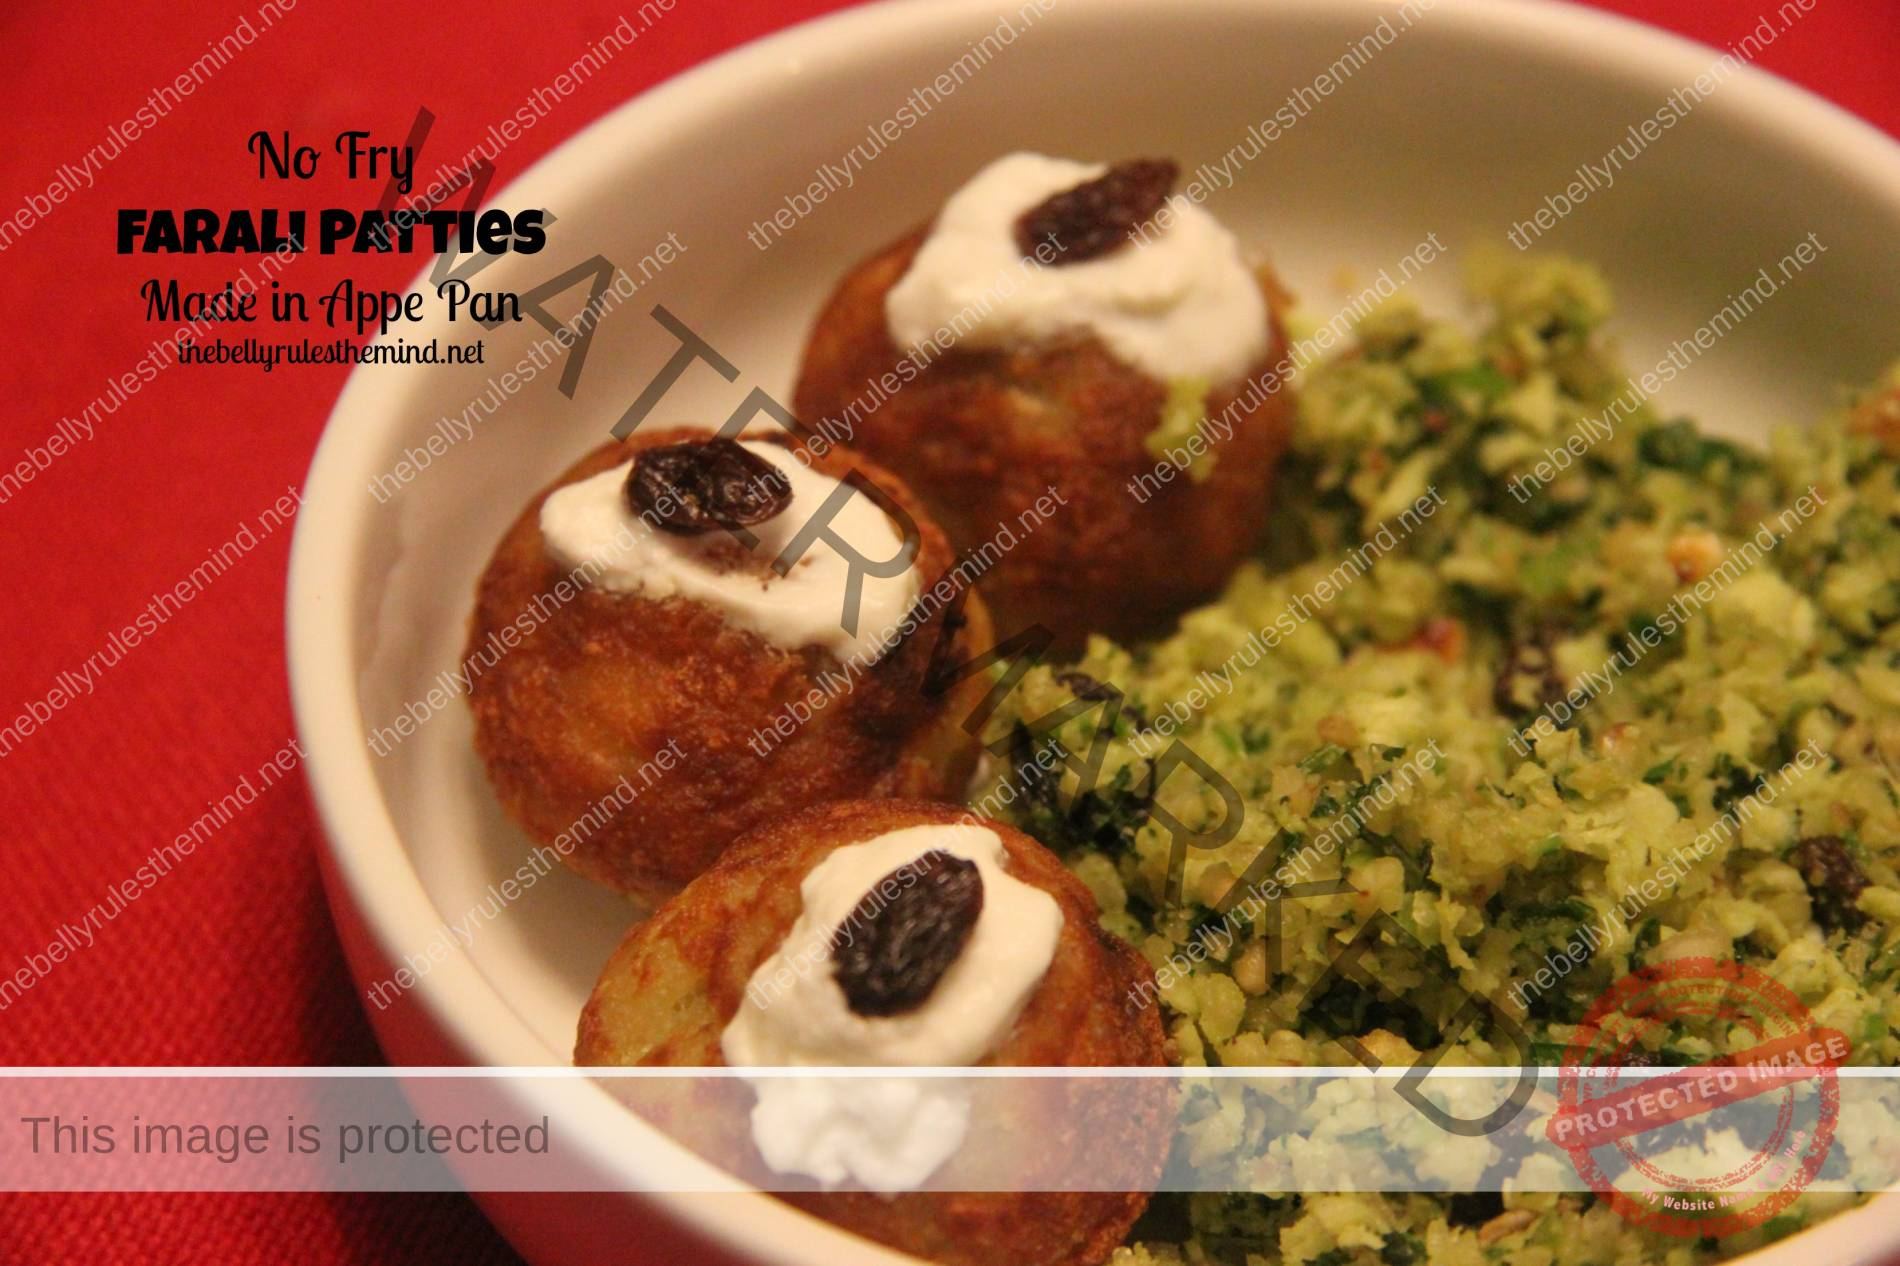 Farali (Fasting) Patties made in appe pan